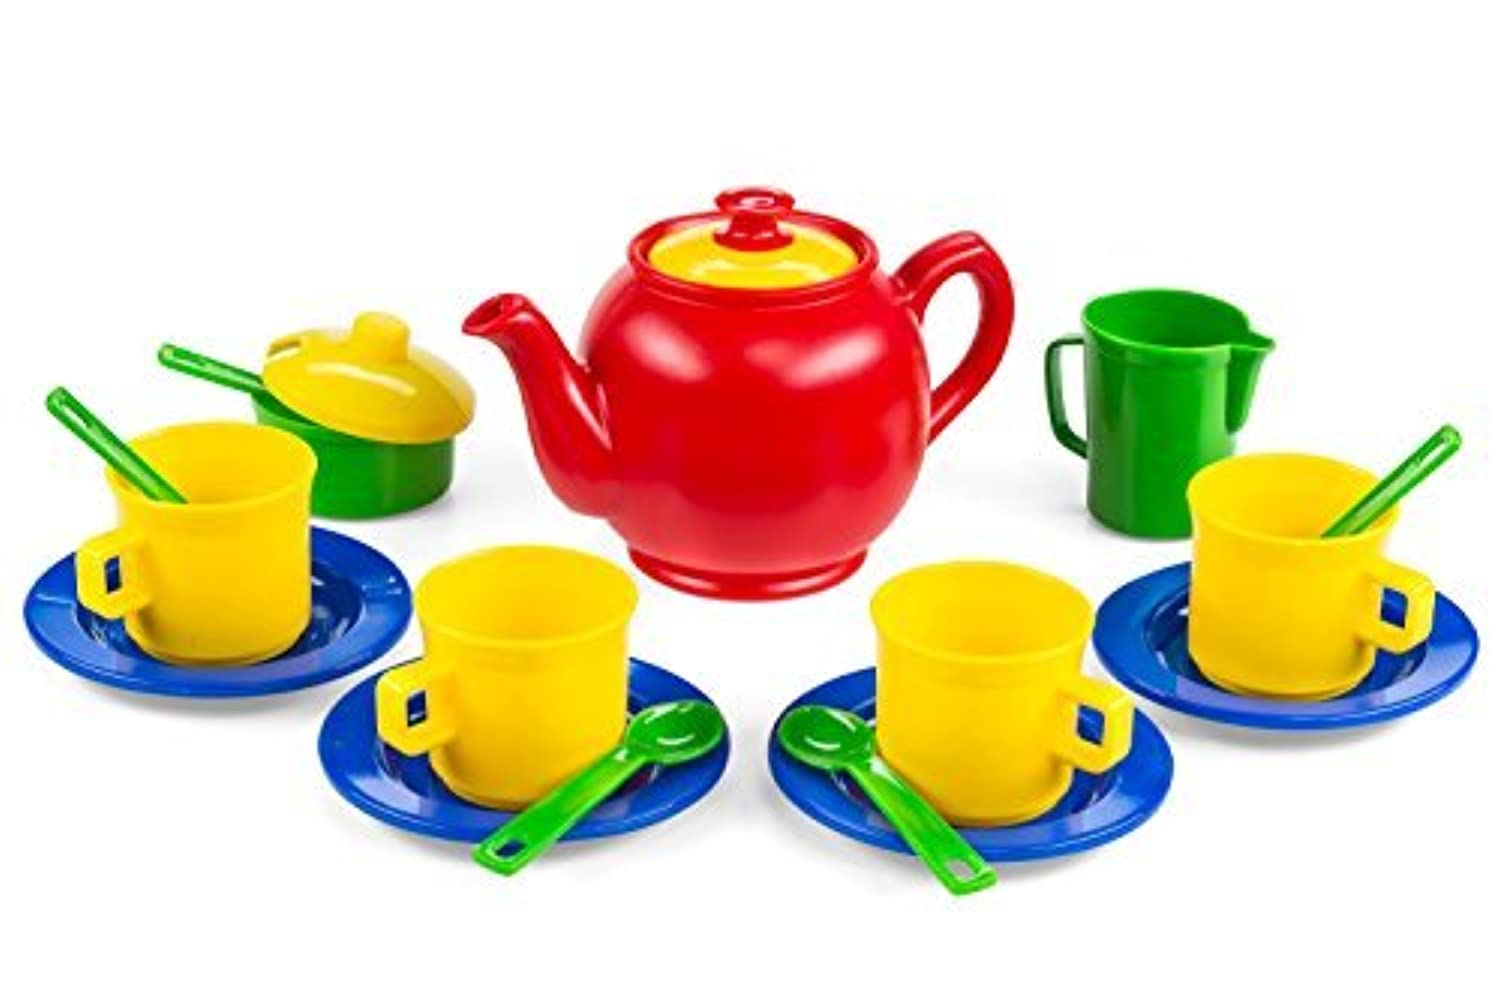 Kidzlane Play Tea Set, 16 Durable Plastic Pieces, Safe and BPA Free for Children's Tea Party and Fun [並行輸入品]